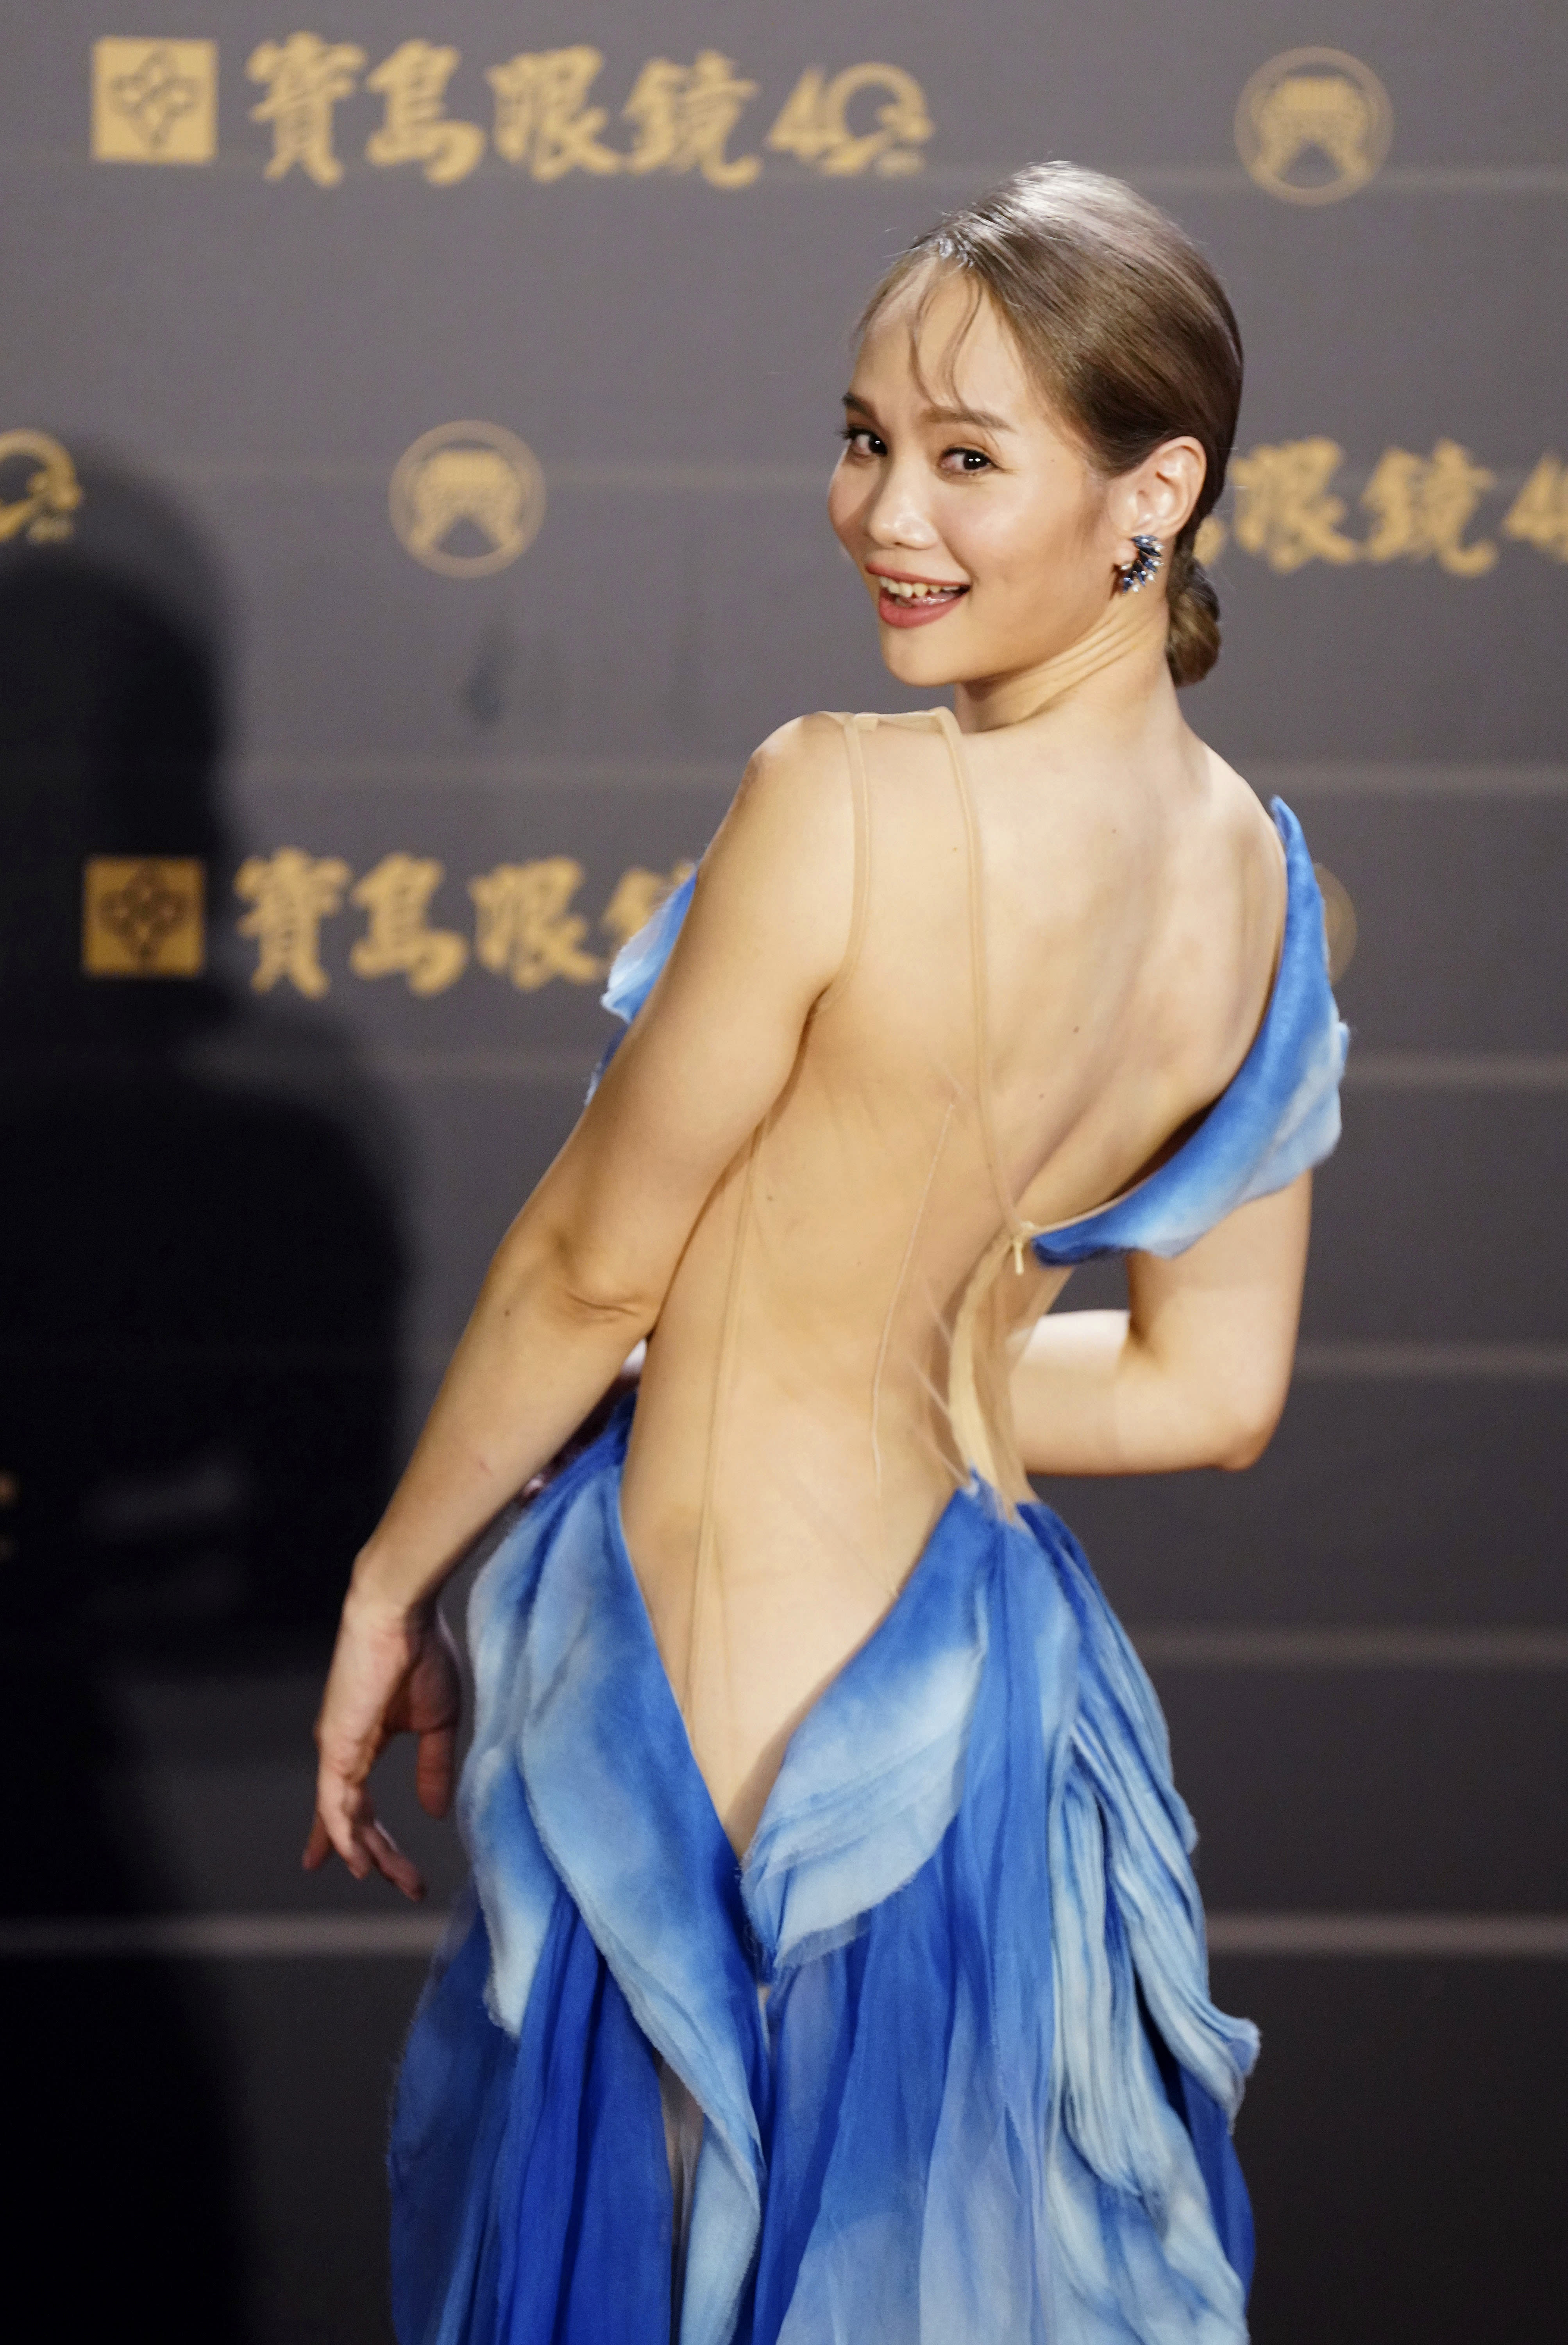 Taiwanese singer Freda Li of pop group ''Murmurshow'' poses as she arrives for the 31th Golden Melody Awards in Taipei, Taiwan, Saturday, Oct. 3, 2020. The awards show, one of the world's biggest Chinese-language pop music annual events was postponed from June to Oct. due to the coronavirus pandemic. (AP Photo/Billy Dai)